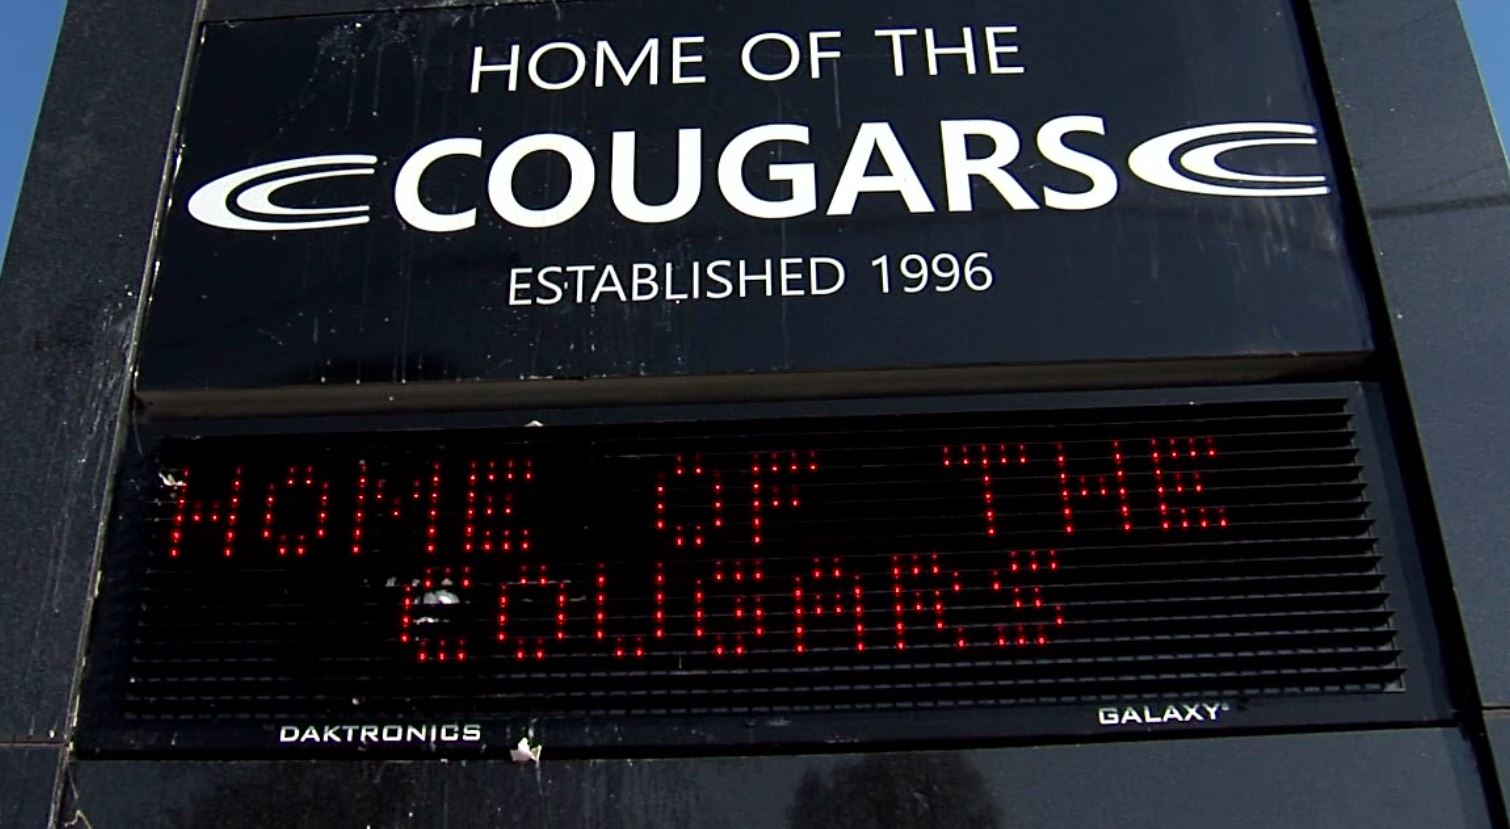 Bits of yolk and shell remain, baked into the Home of the Cougars sign at Clay-Chalkville High School.